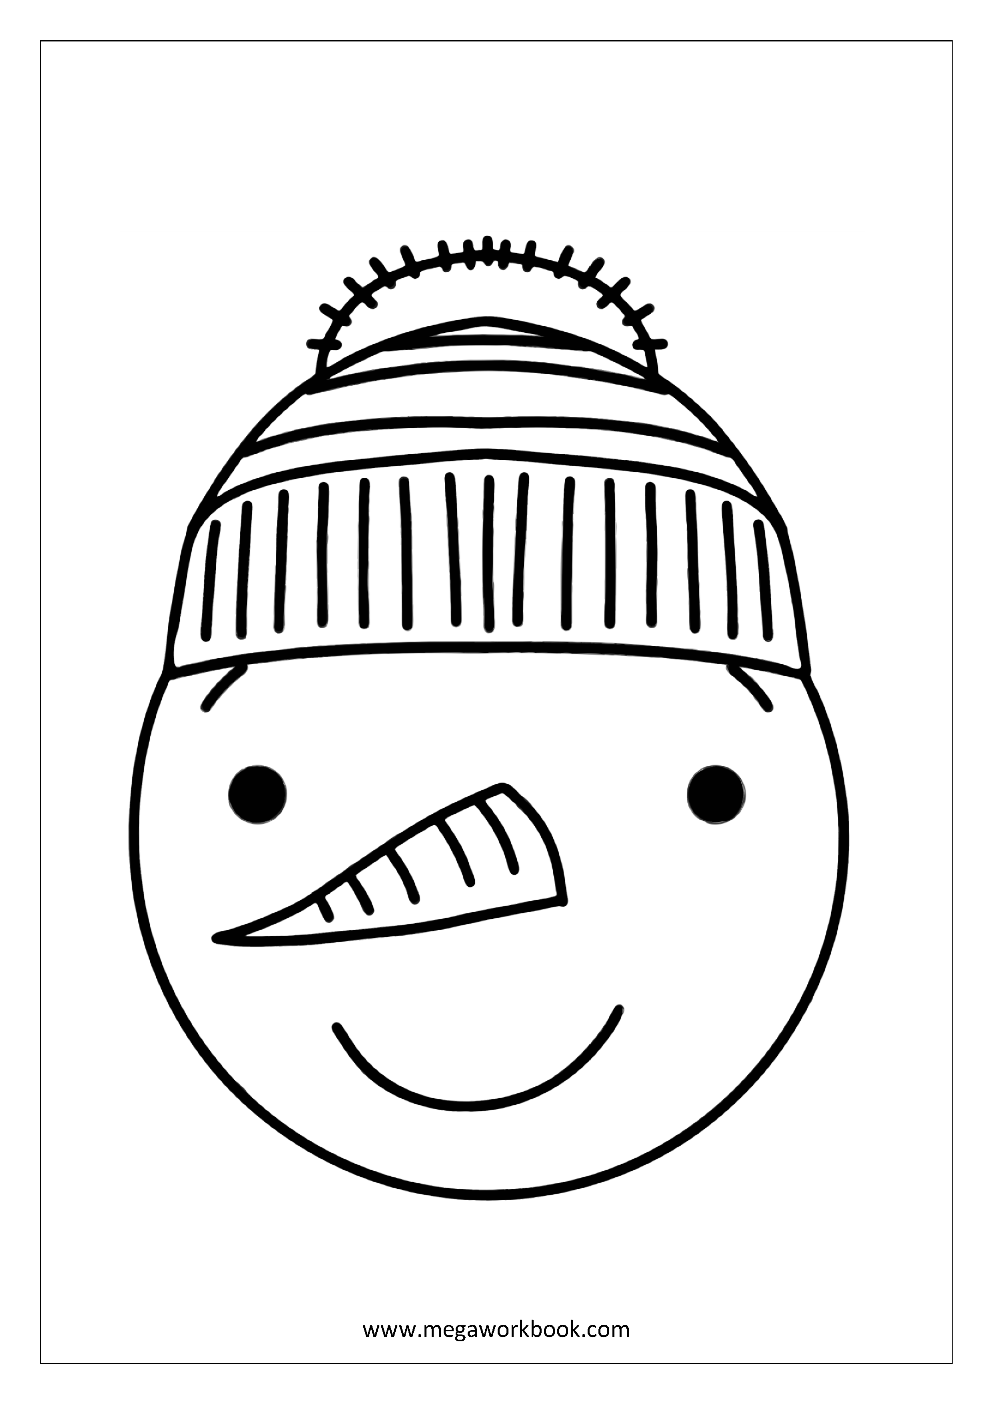 photograph relating to Printable Snowman Faces known as Snowman faces coloring webpages